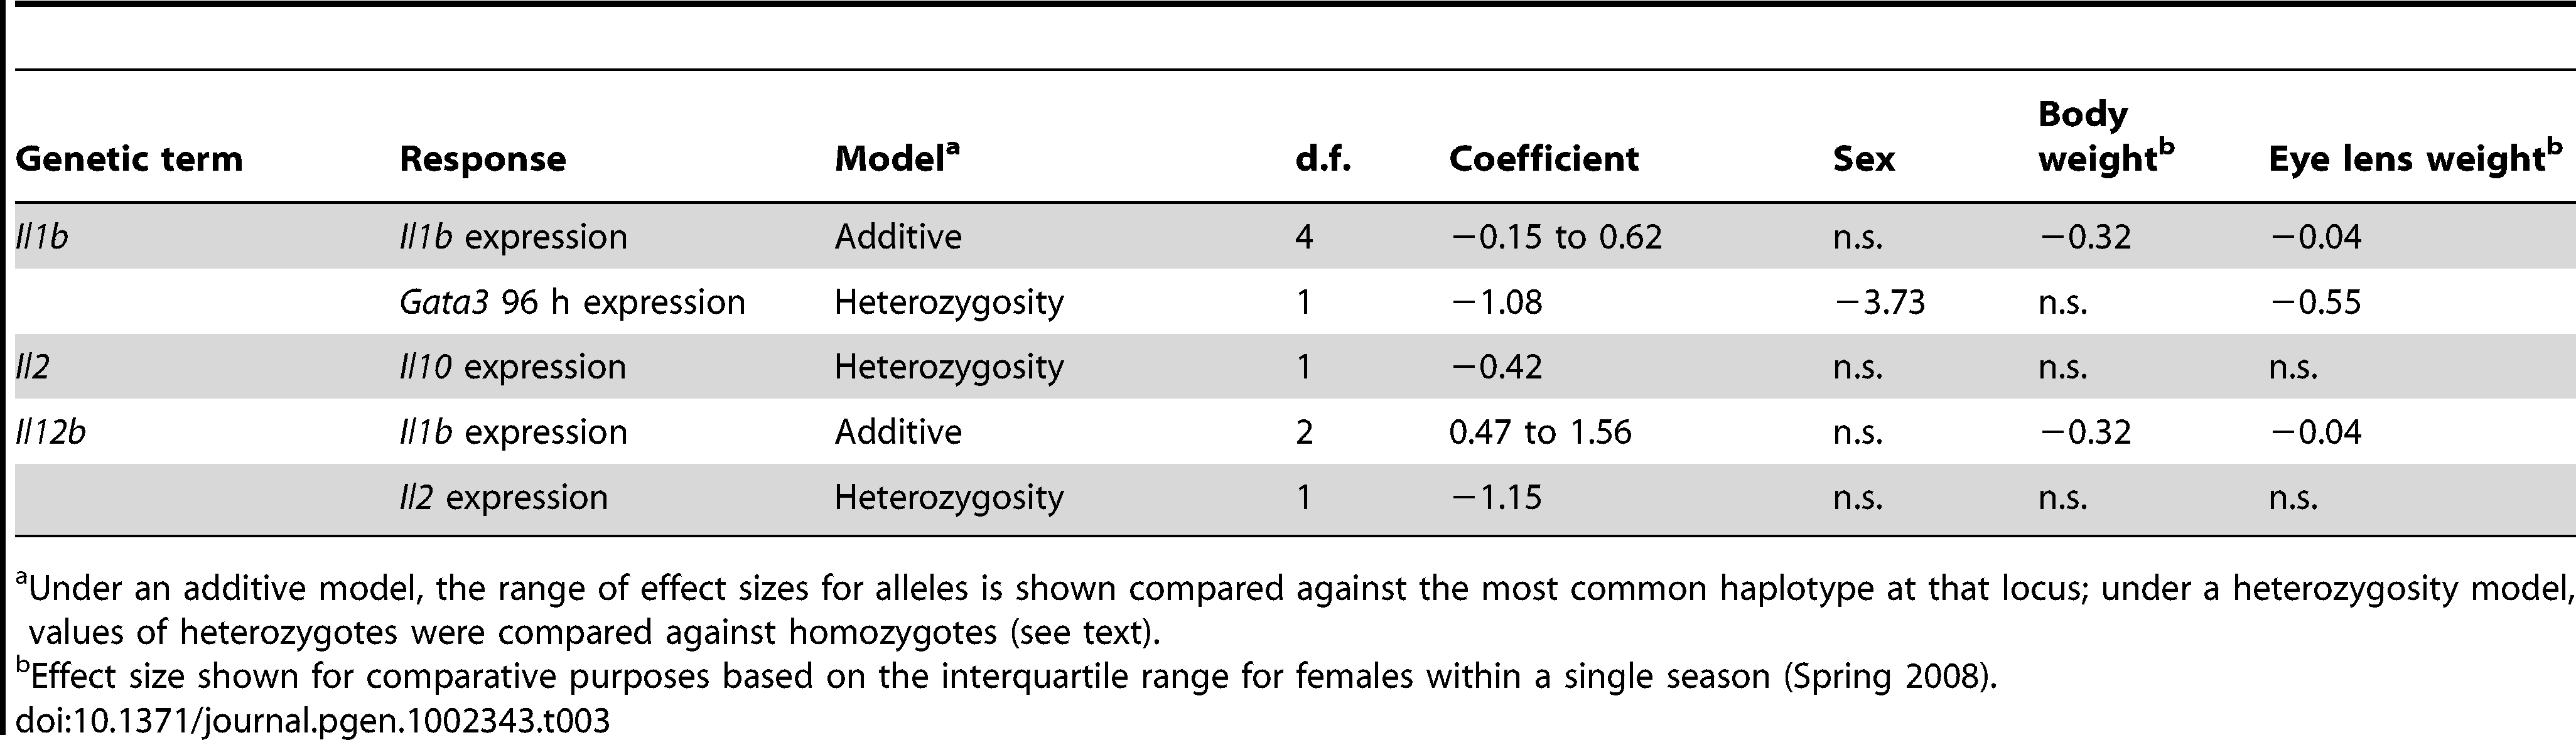 Comparison of effect sizes for genetic versus intrinsic terms in immunological parameters.